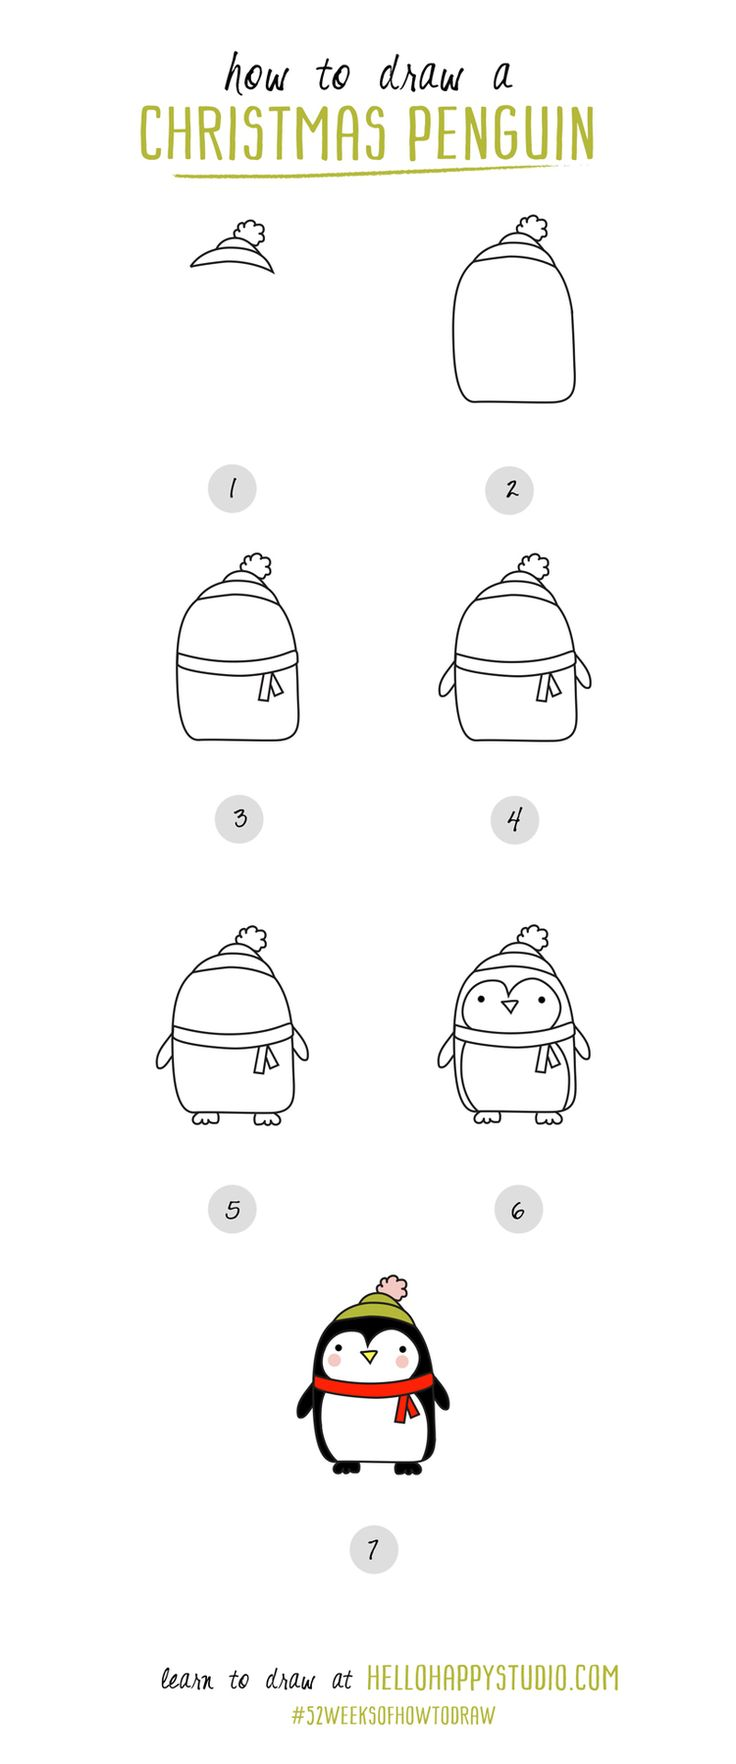 how to draw a christmas penguin 52weeksofhowtodraw hellohappystudiocom